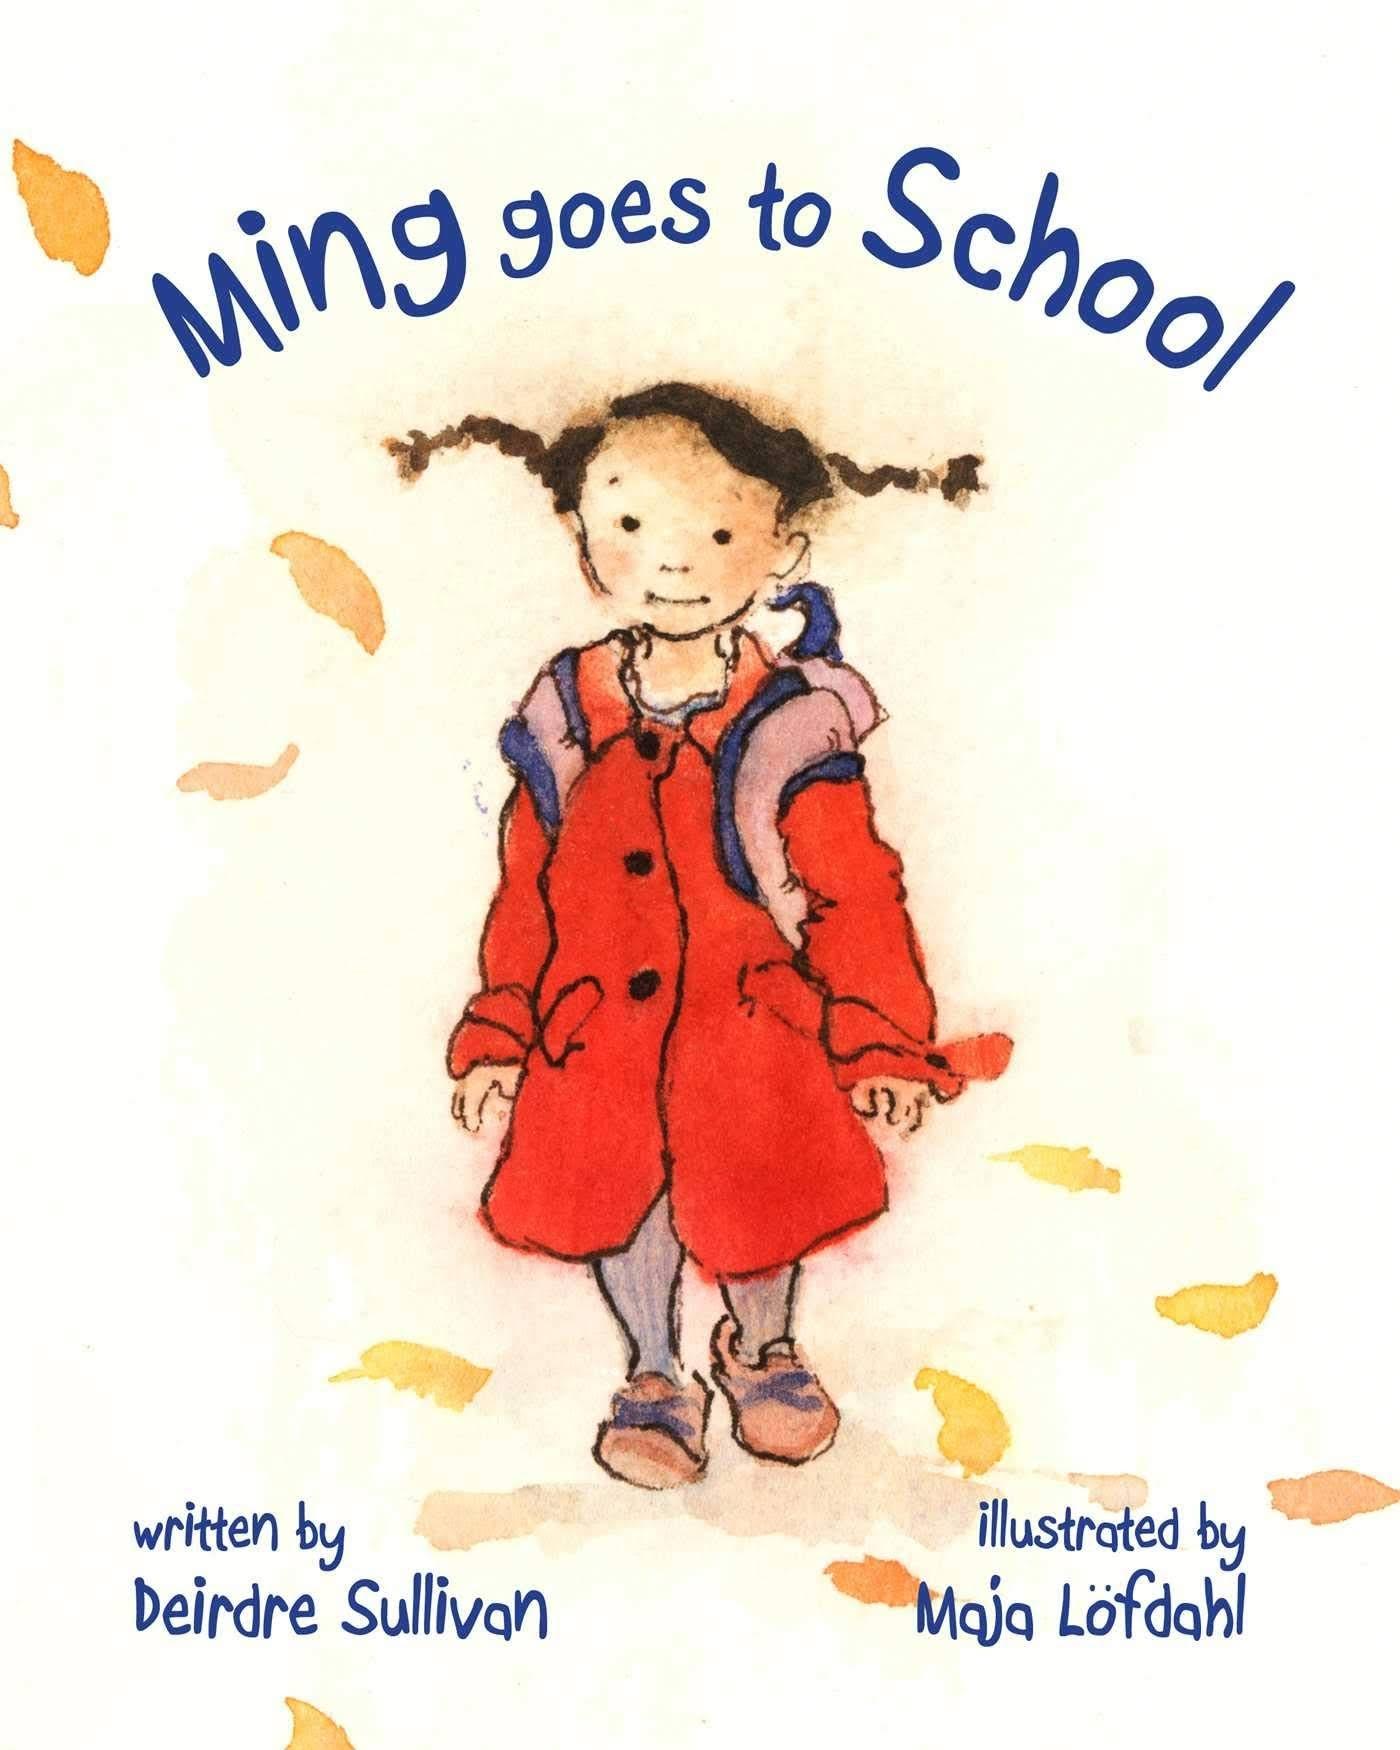 Ming Goes to School by Deirdre Sullivan and illustrated by Maja Löfdahl